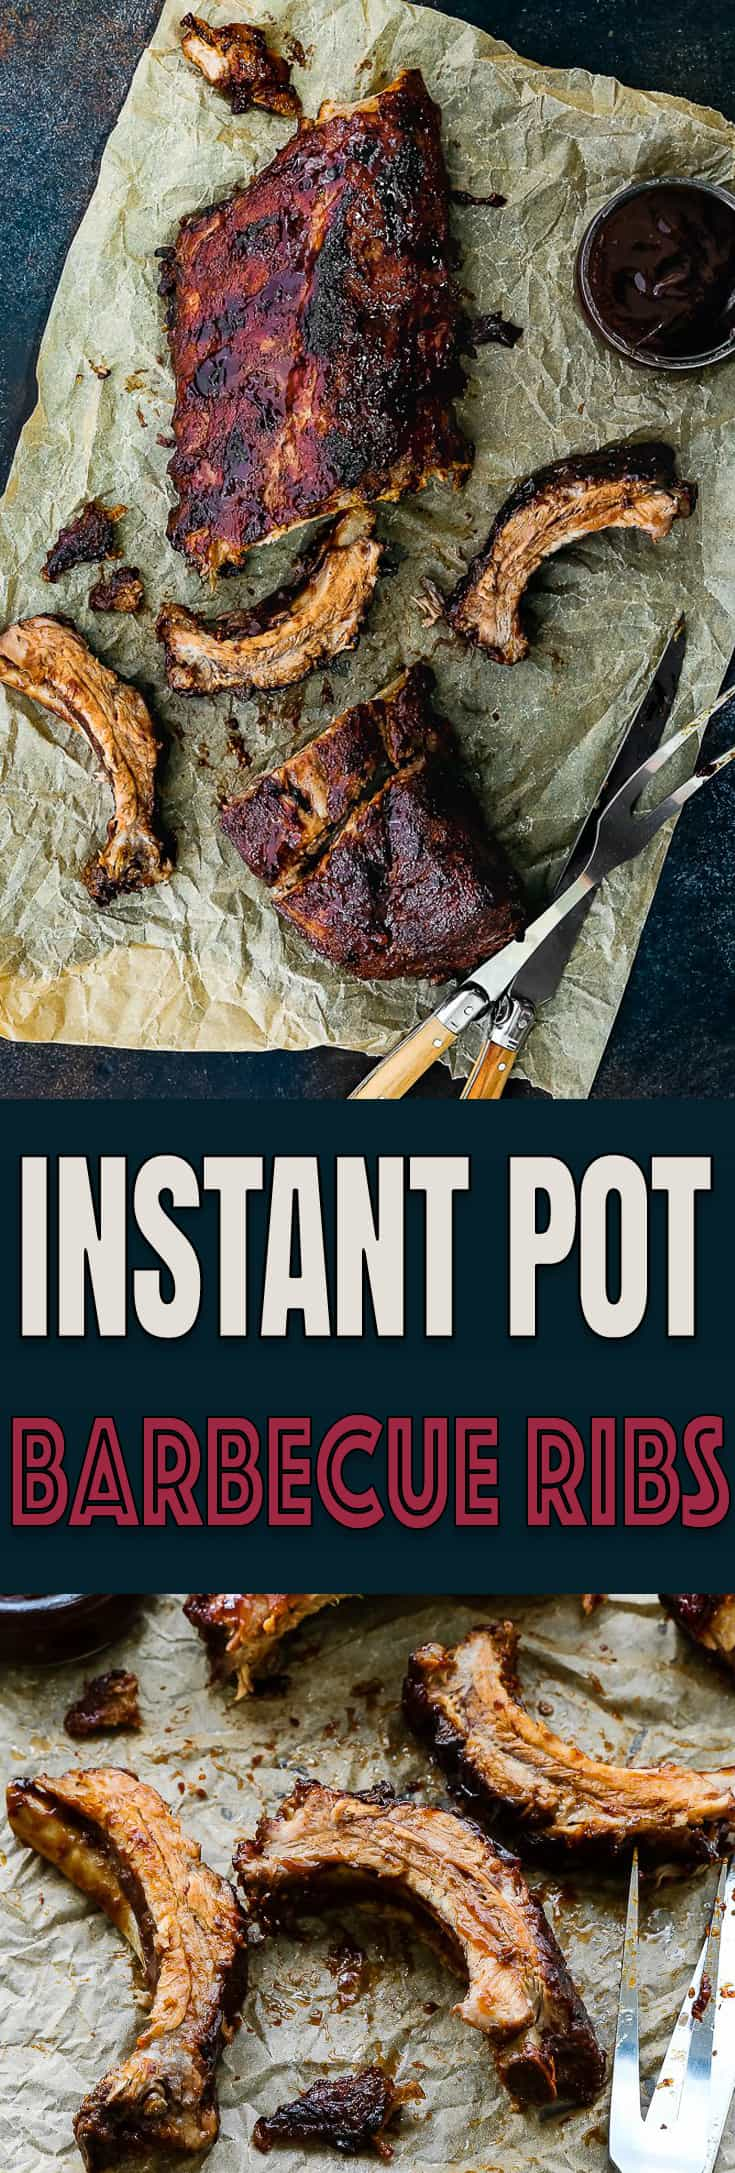 These Instant Pot Barbecue Ribs are sticky, saucy, savory, sweet, and sooo tender. Fall-off-the-bone tender. They are done in 30 minutes, with just 5 ingredients. https://mommyshomecooking.com